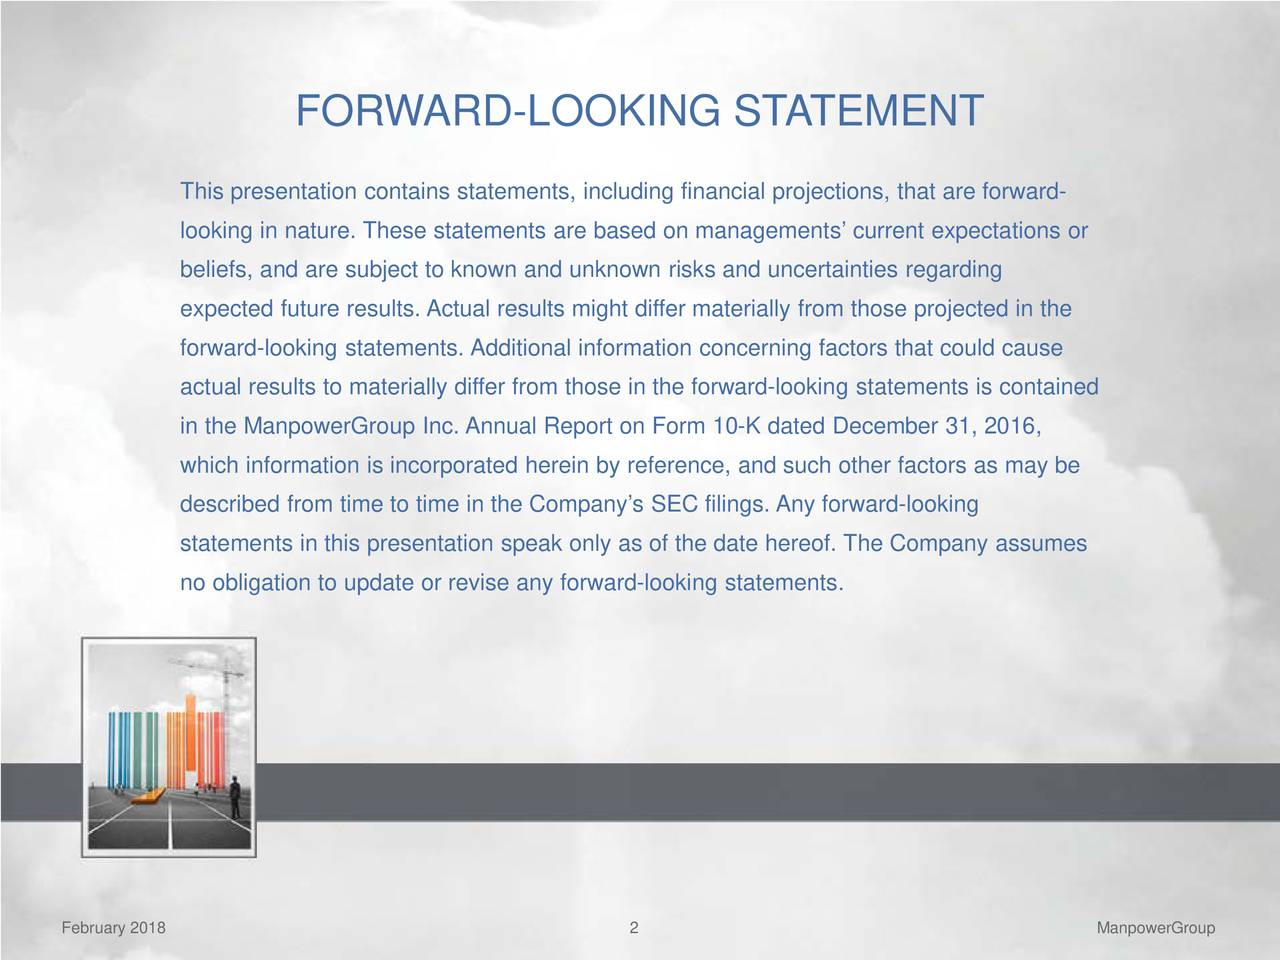 This presentation contains statements, including financial projections, that are forward- looking in nature. These statements are based on managements' current expectations or beliefs, and are subject to known and unknown risks and uncertainties regarding expected future results. Actual results might differ materially from those projected in the forward-looking statements. Additional information concerning factors that could cause actual results to materially differ from those in the forward-looking statements is contained in the ManpowerGroup Inc. Annual Report on Form 10-K dated December 31, 2016, which information is incorporated herein by reference, and such other factors as may be described from time to time in the Company's SEC filings. Any forward-looking statements in this presentation speak only as of the date hereof. The Company assumes no obligation to update or revise any forward-looking statements. February 2018 2 ManpowerGroup